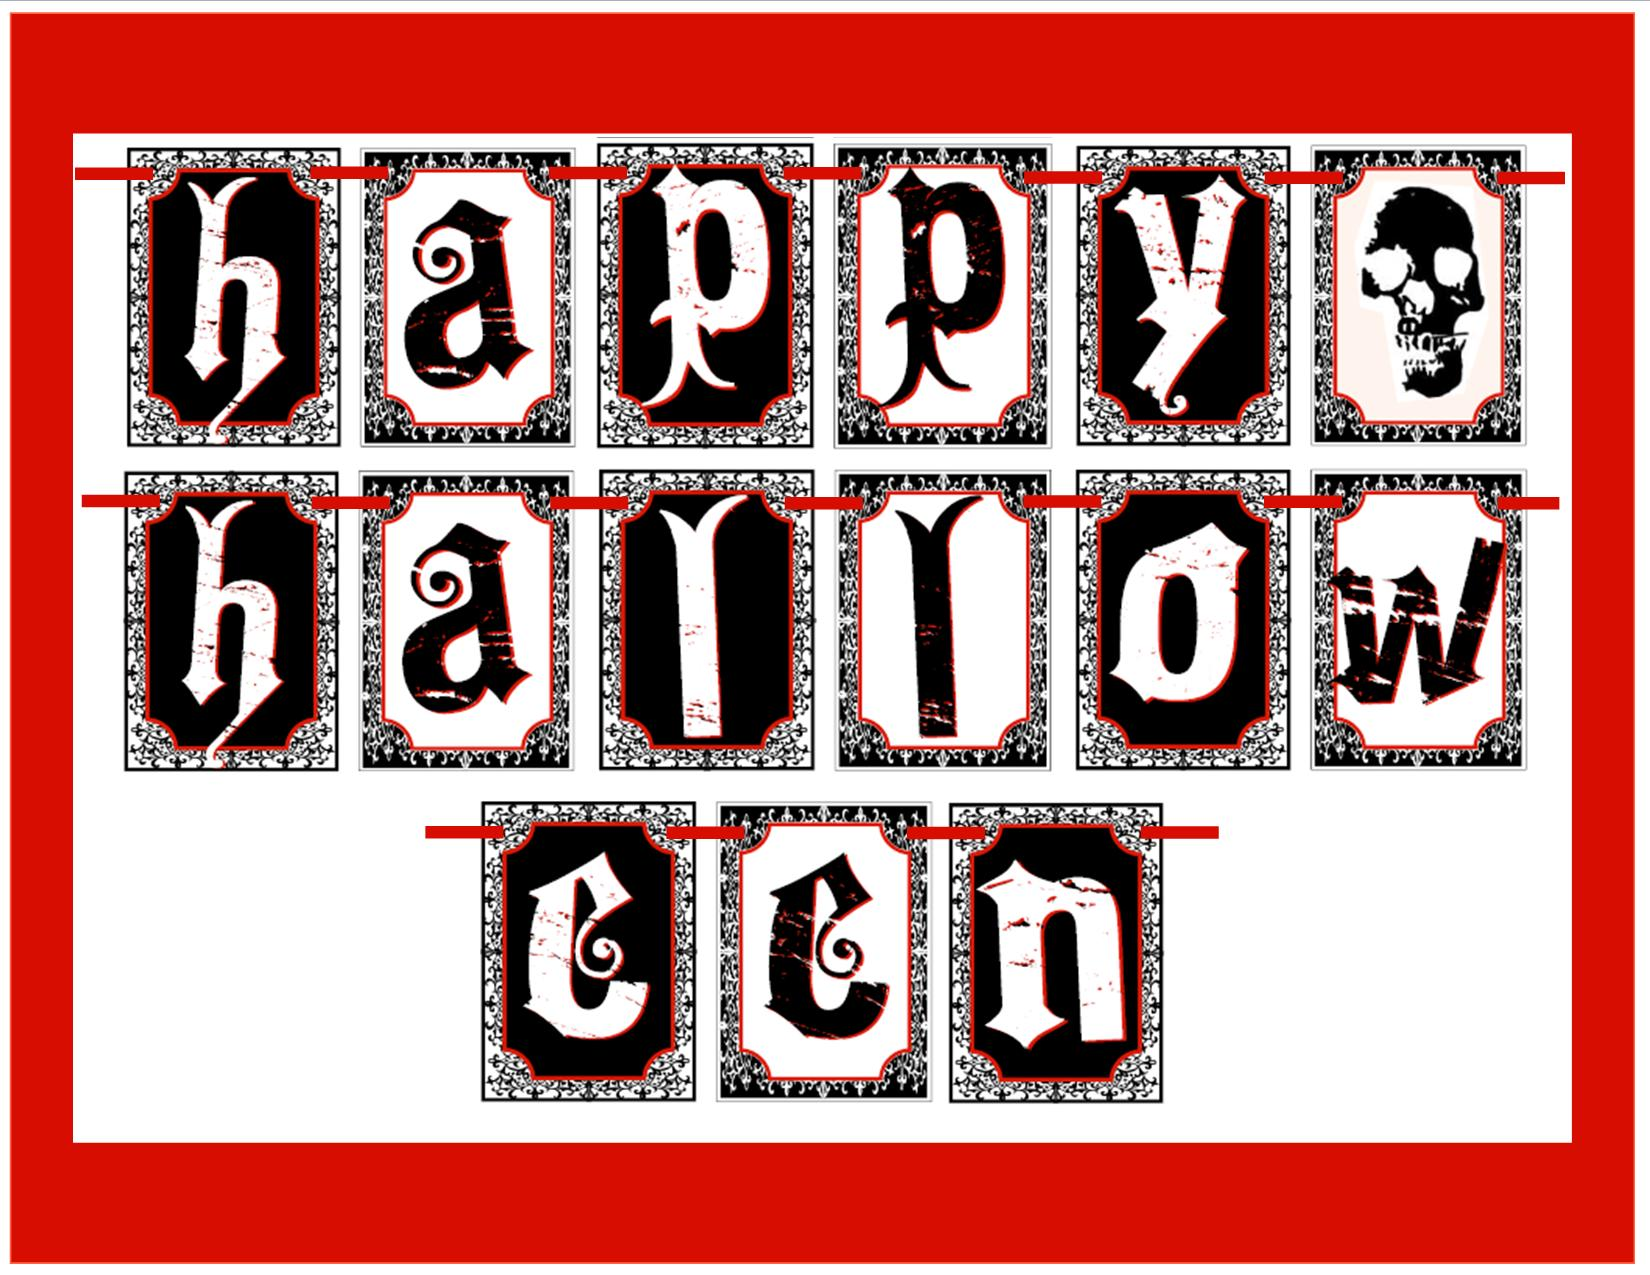 It's just a picture of Gutsy Printable Halloween Banner